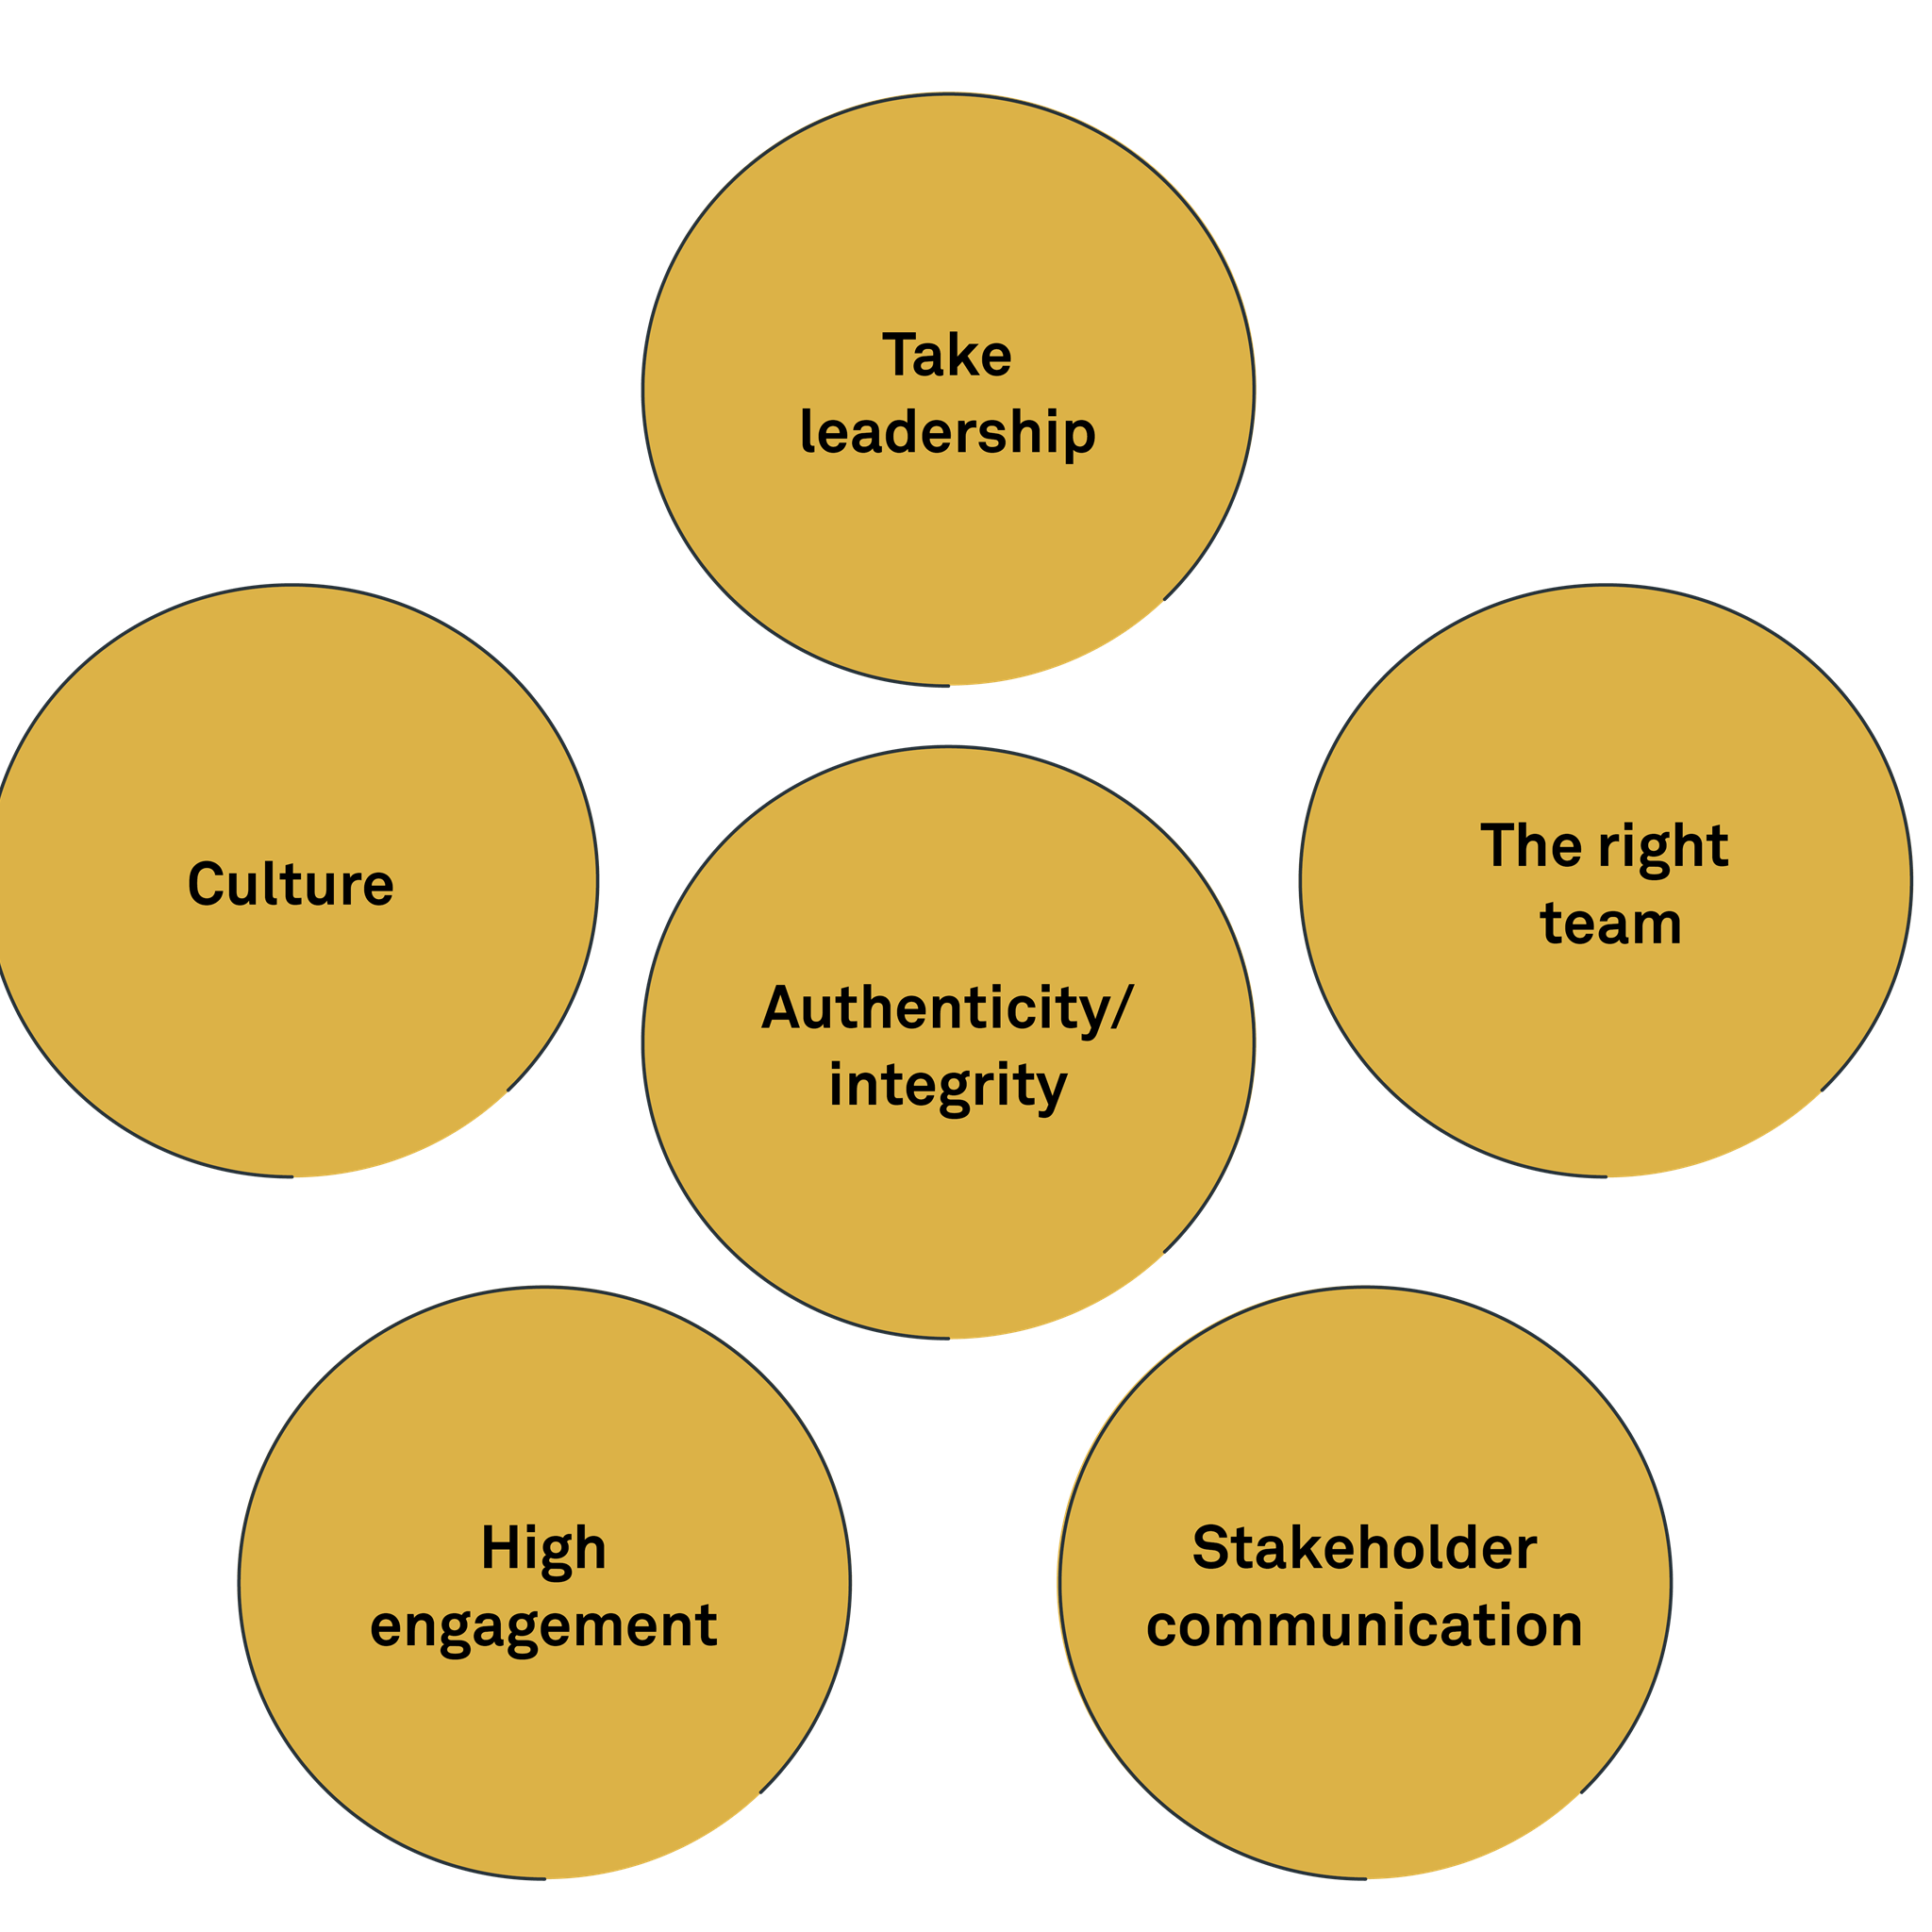 Six domains of change leadership that were considered critical by the CEOs